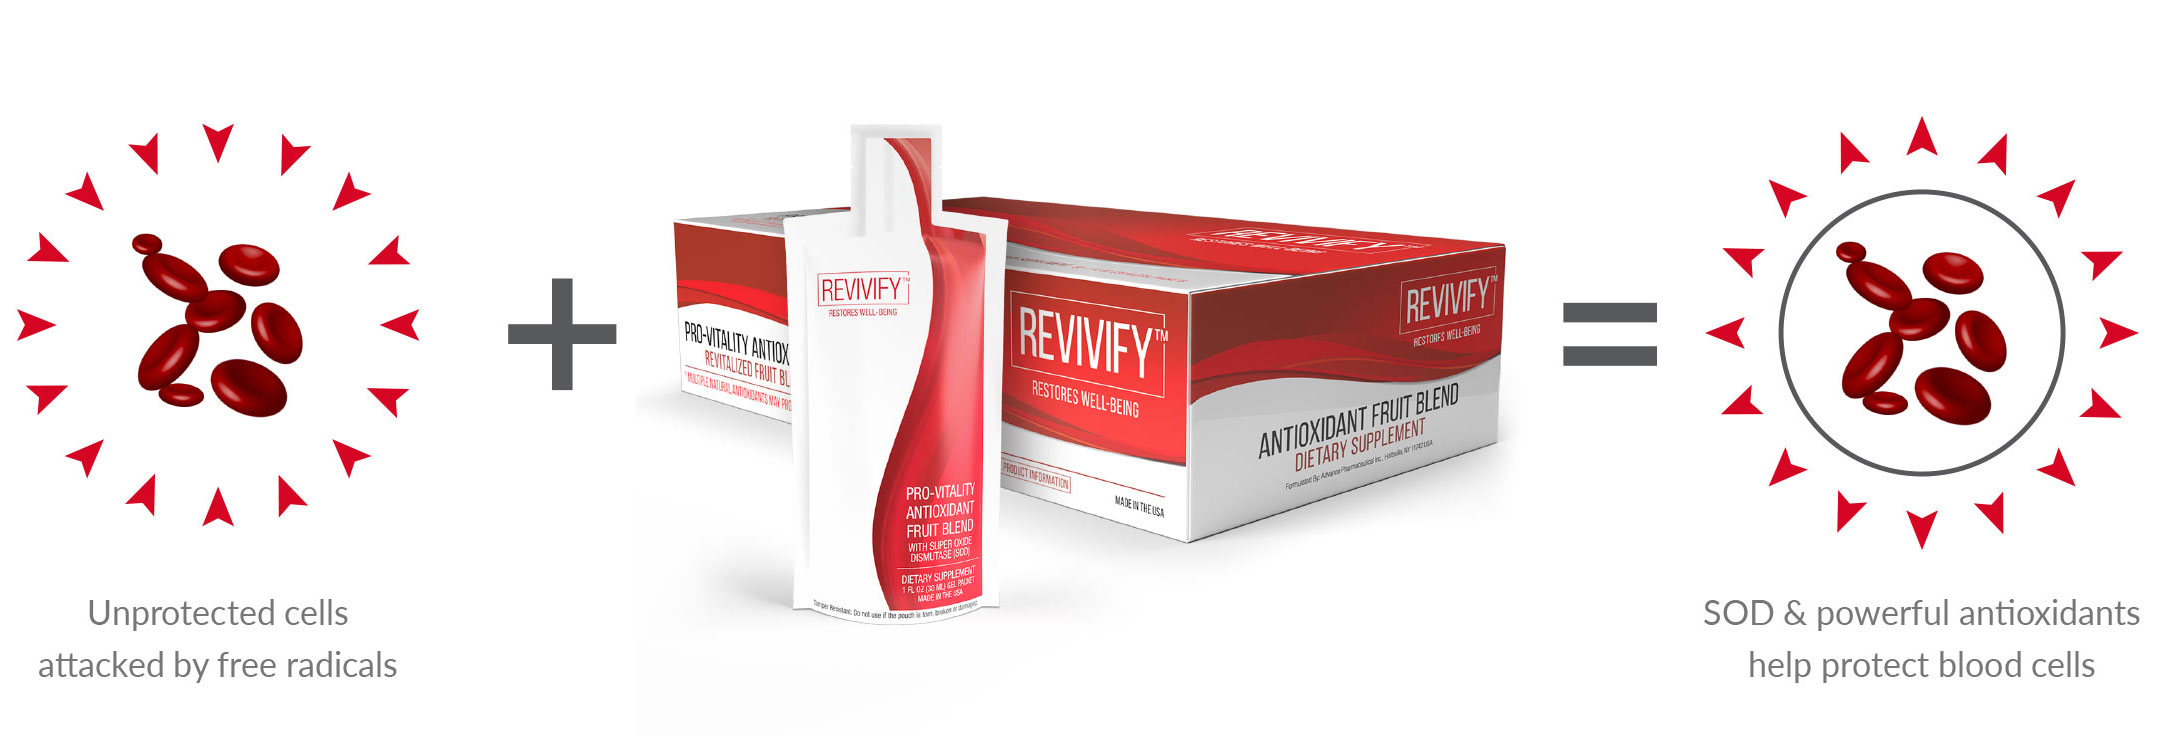 Revivify-Cell-Protection-001